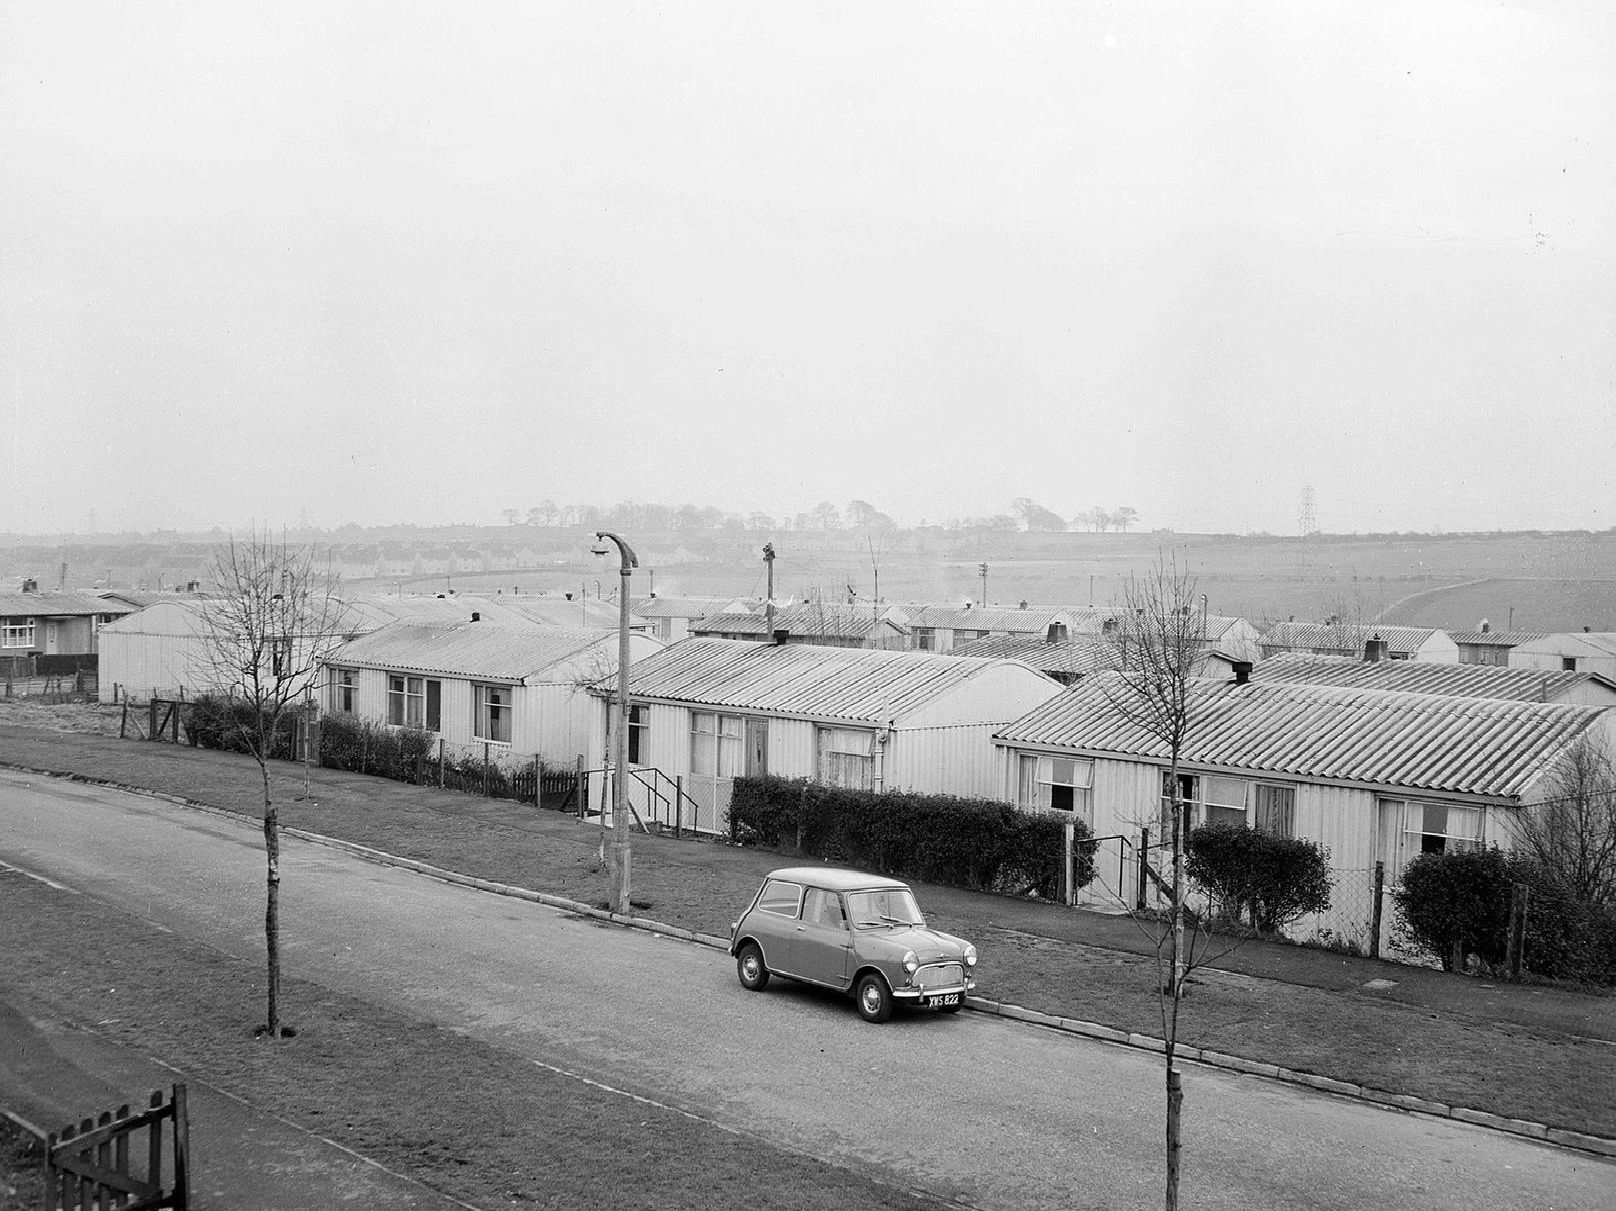 Remembering the prefab houses of Scotland